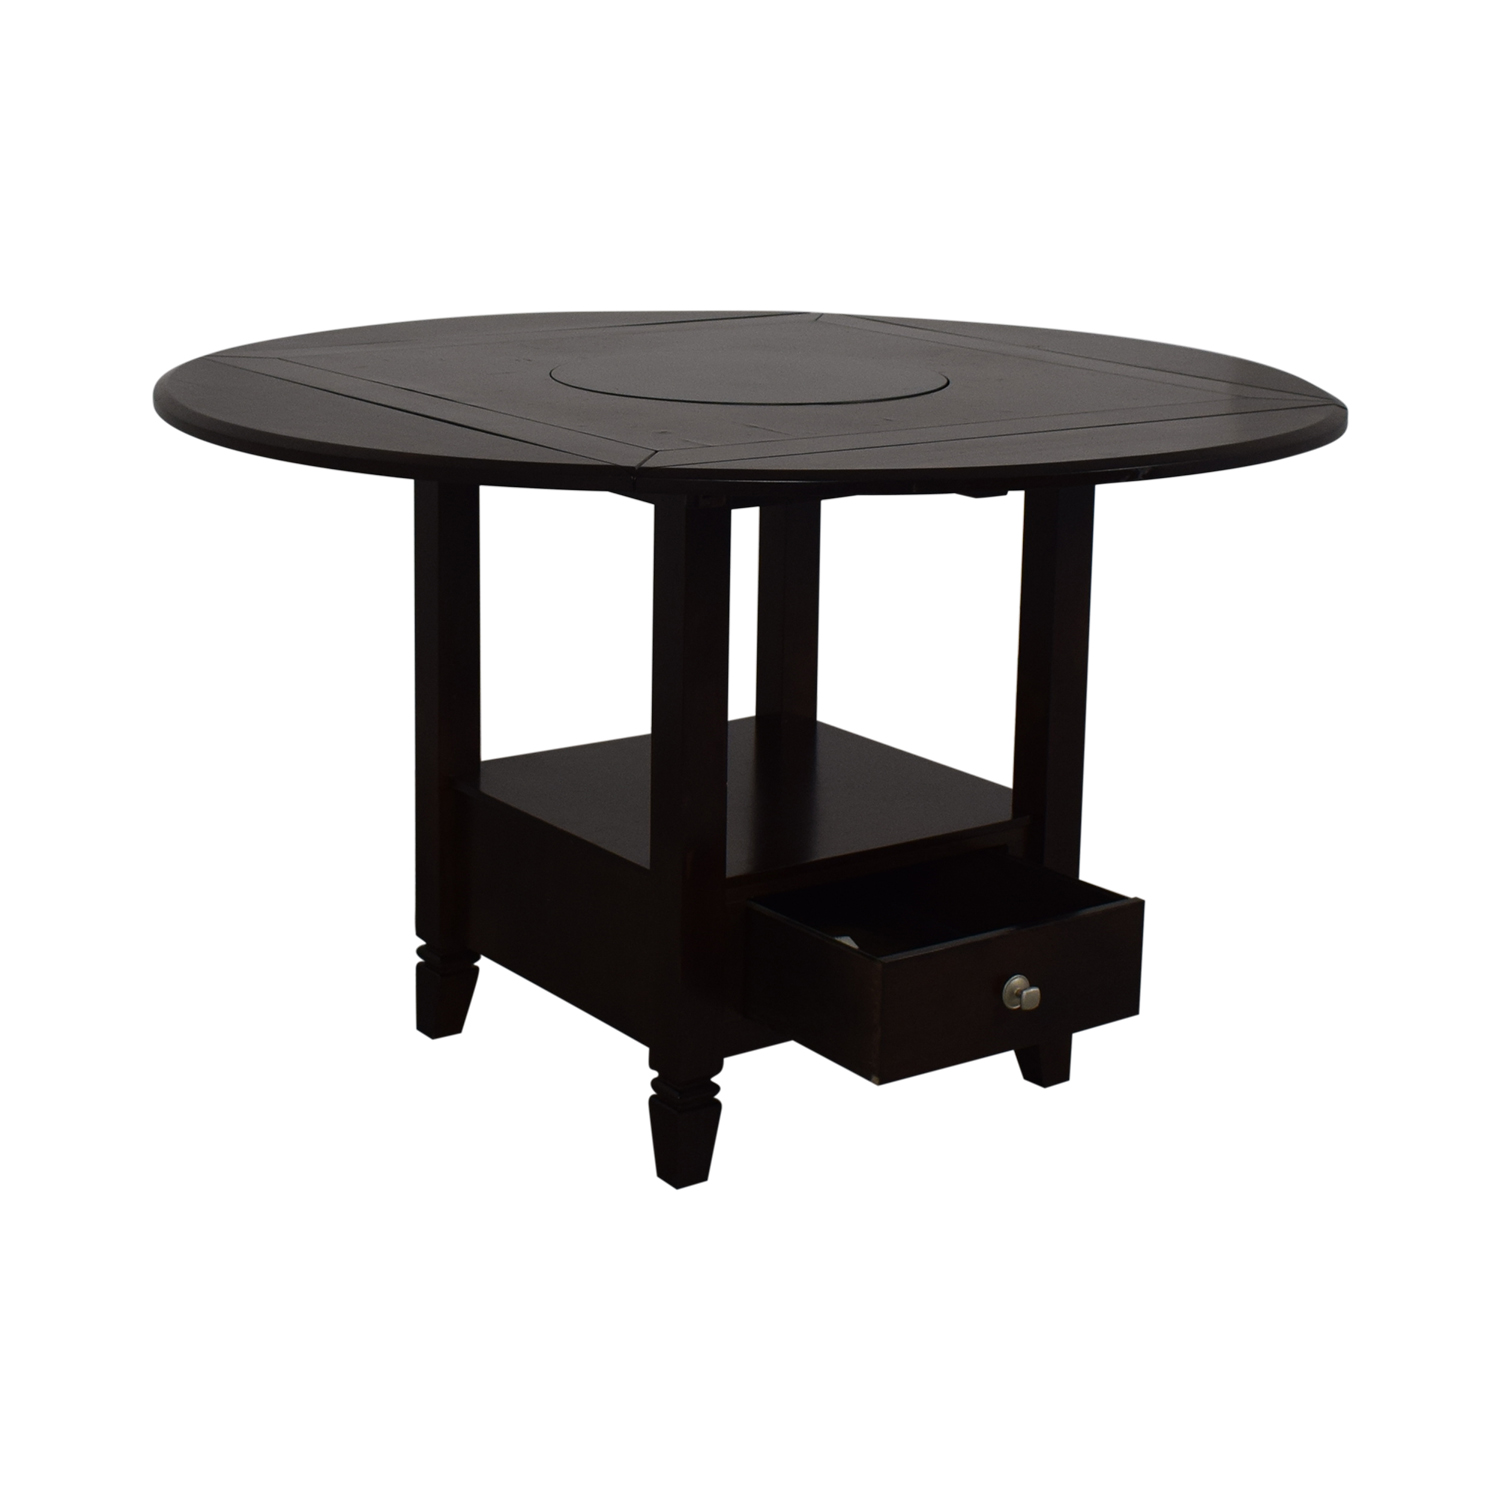 Raymour & Flanigan Bar Height Drop Leaf Dining Table / Tables